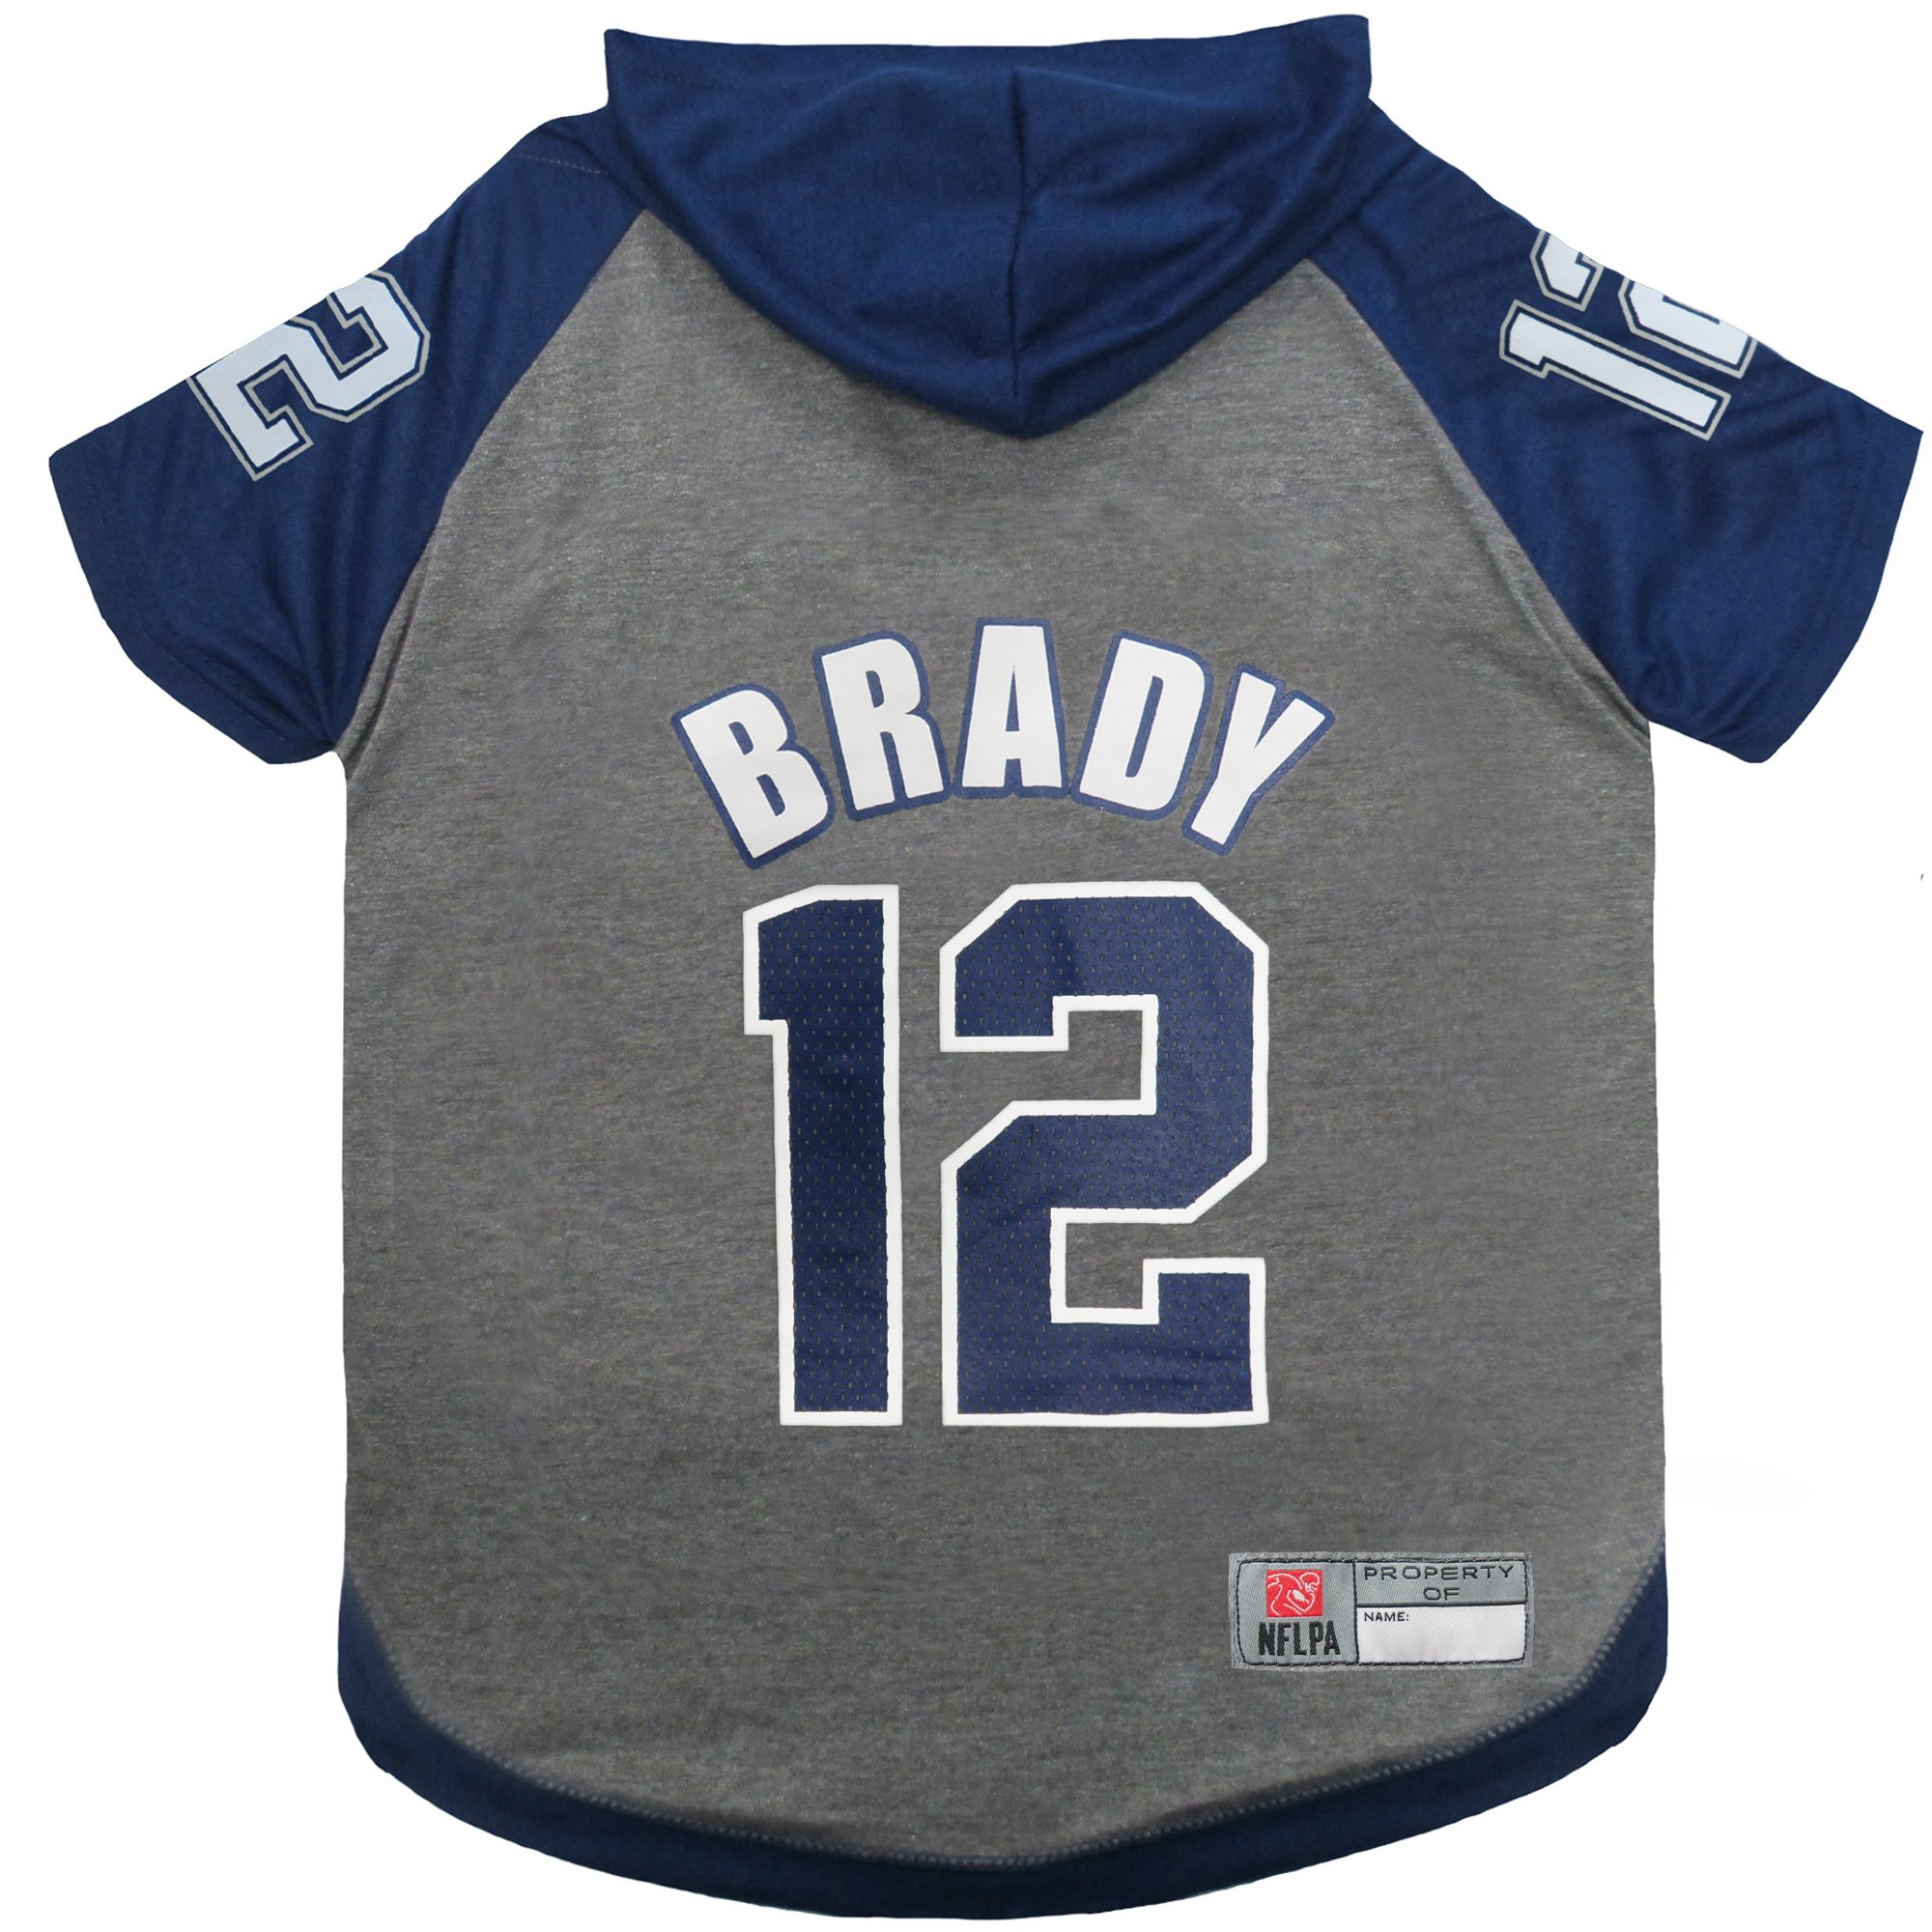 NFL NFLPA TOM BRADY HOODIE for DOGS & CATS NEW ENGLAND PATRIOTS Dog T-Shirt, Large | Sports HOODY Tee Shirt for Pets | Licensed Sporty Dog Shirt.